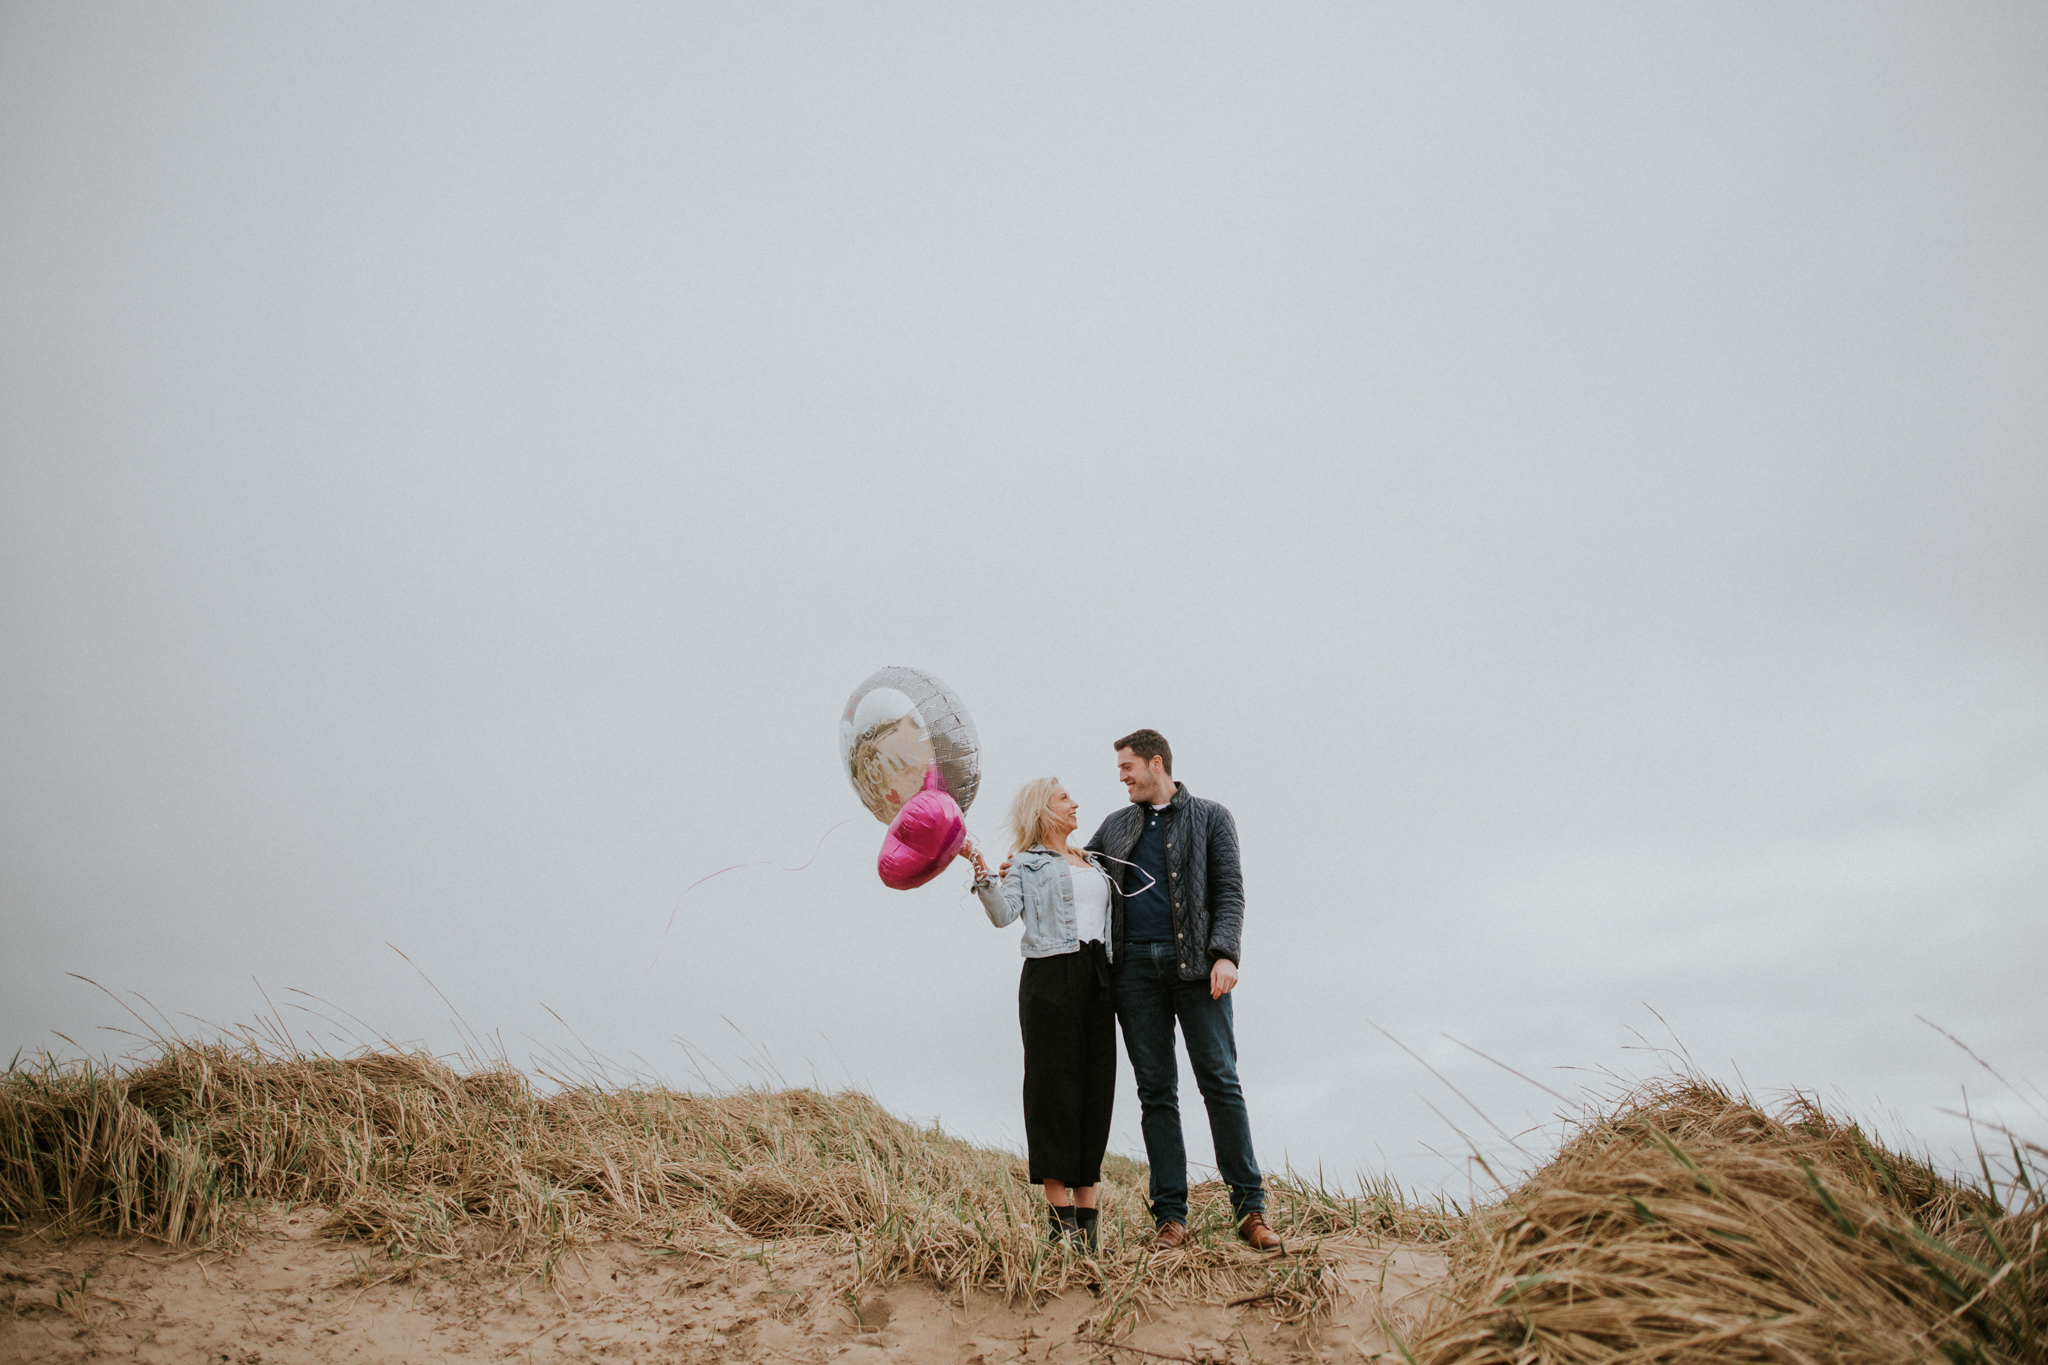 The couple is standing on the beach with the balloons